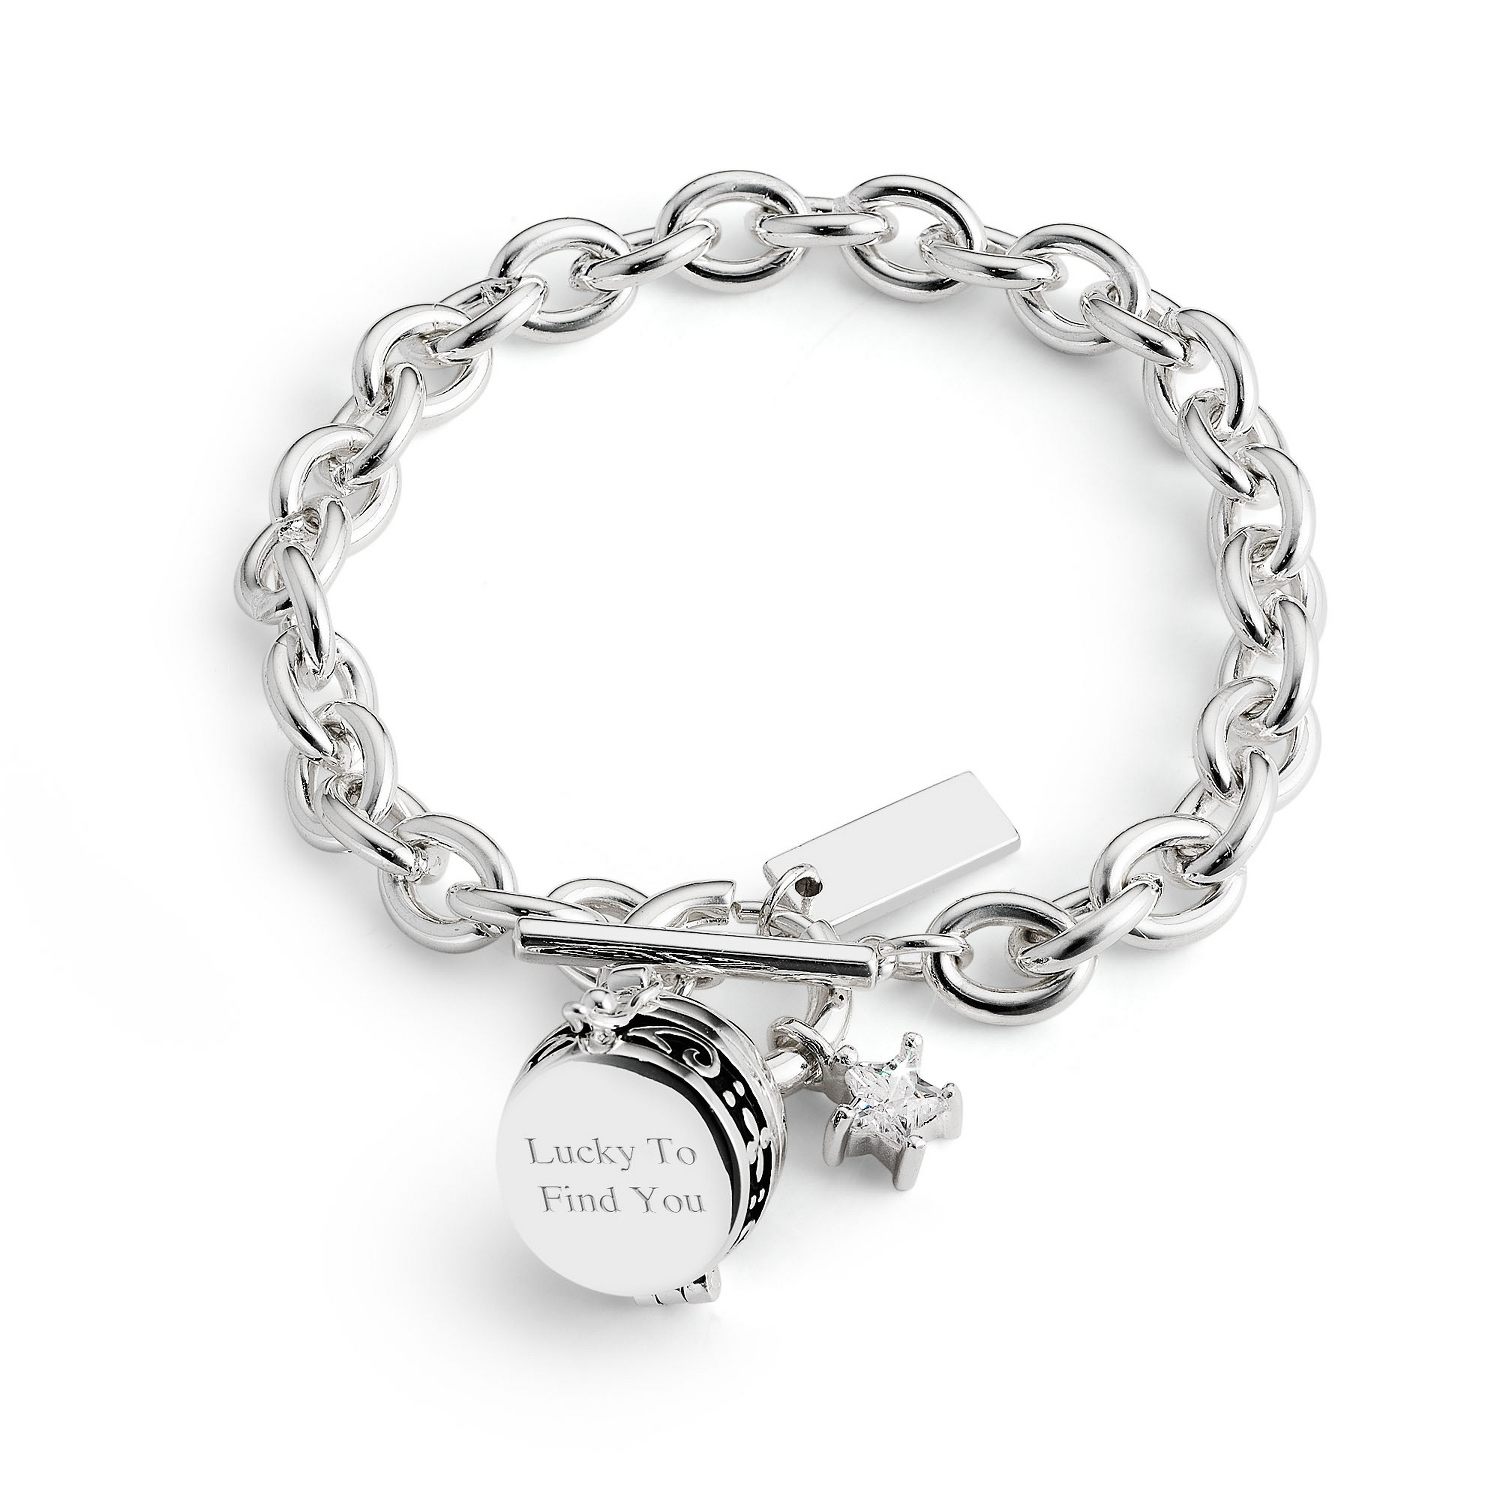 psychology jewelry gifts graduation bracelet fullxfull senior gift listing college il ilqg